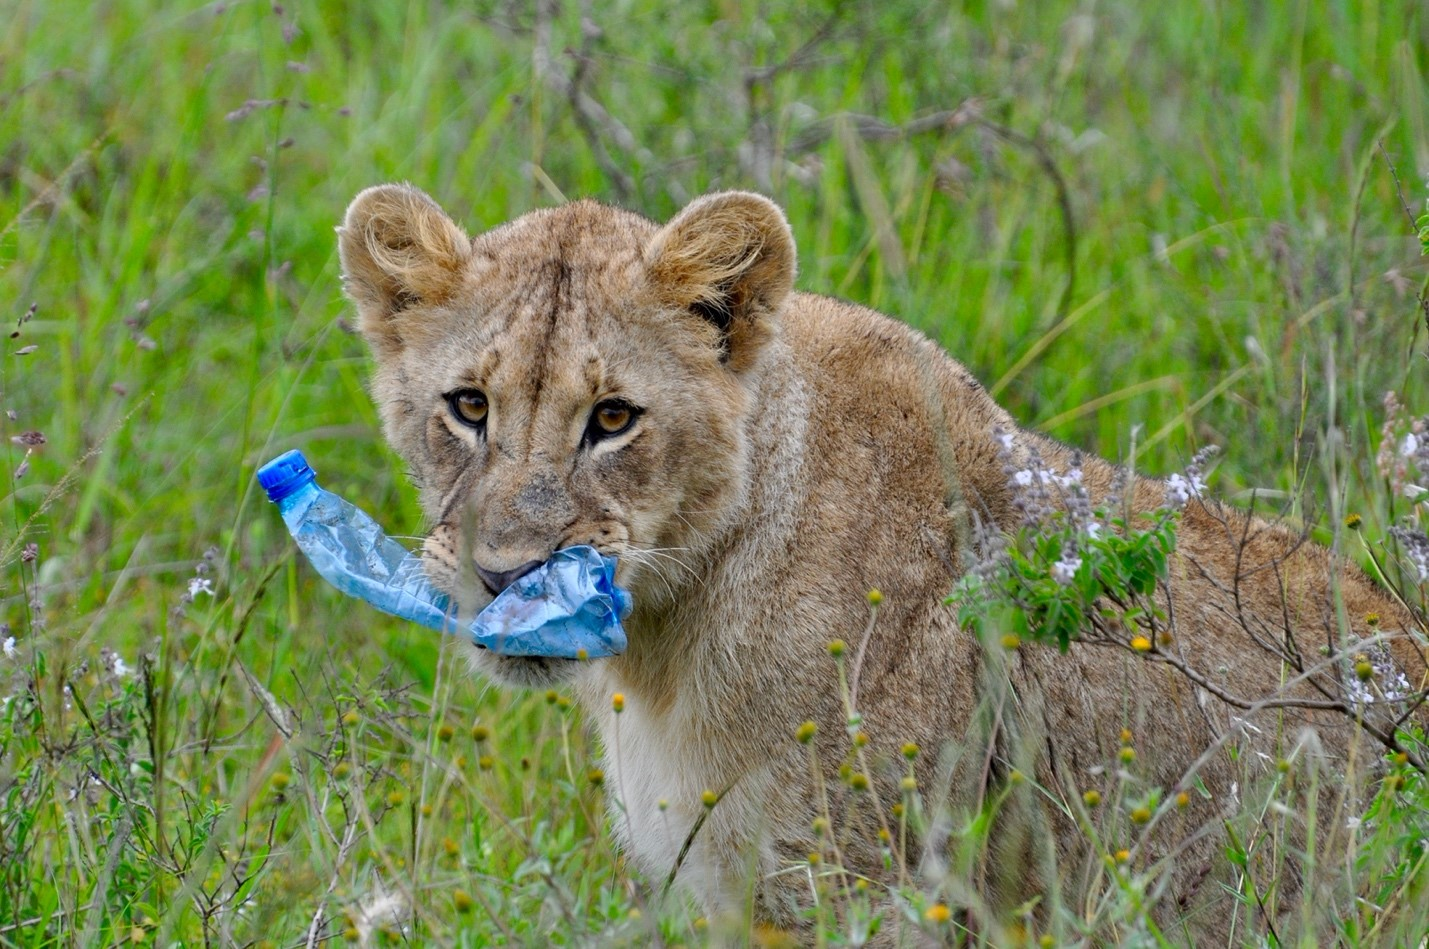 Plastic bottle in lion's mouth